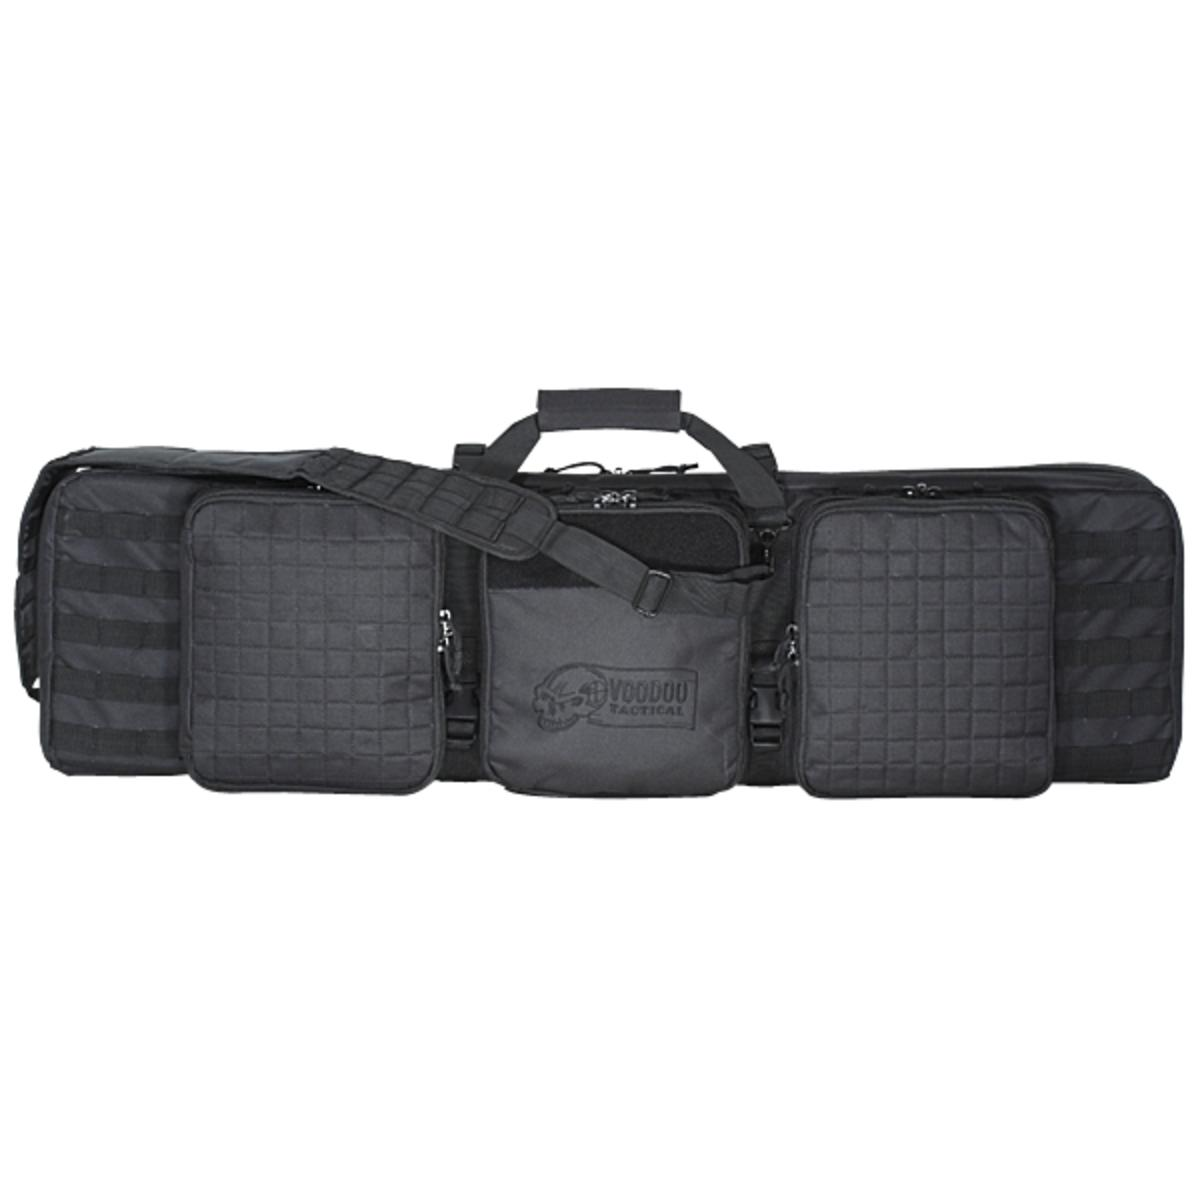 Voodoo Tactical 15 9648 Lockable 42 Inch Molle Soft Rifle Case